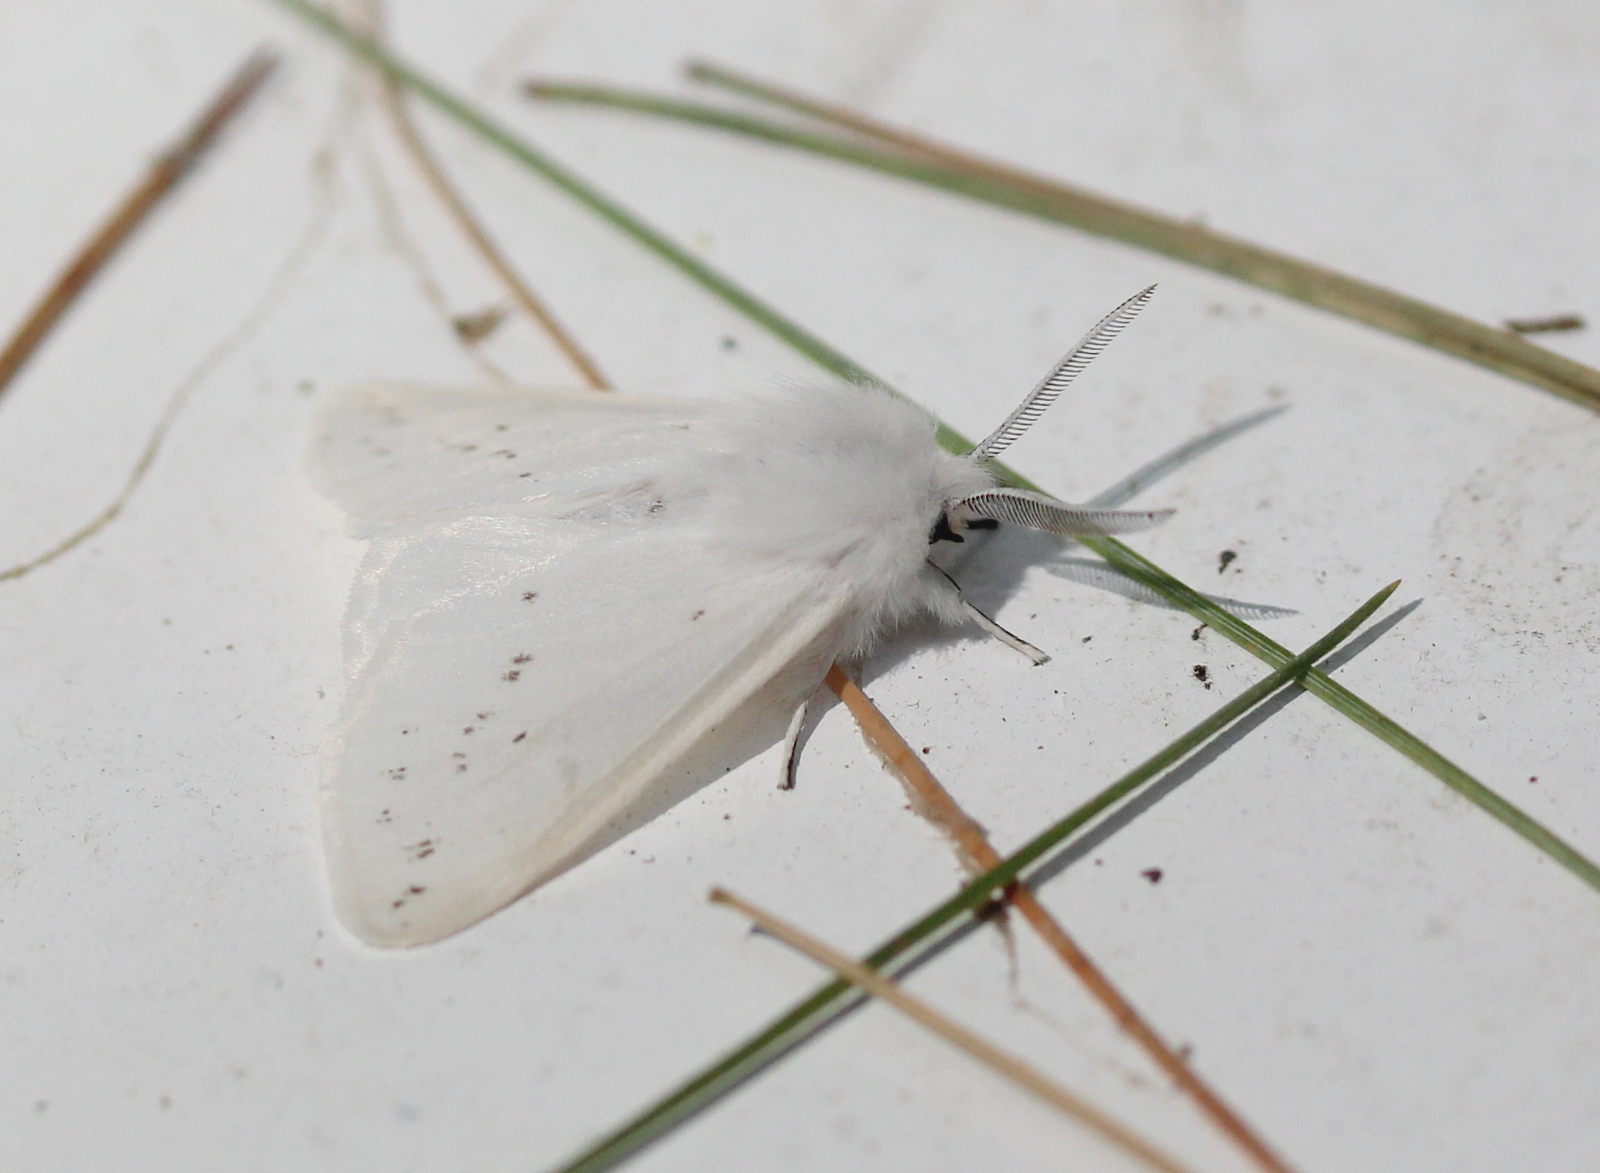 Agreeable Tiger Moth - dorsal view